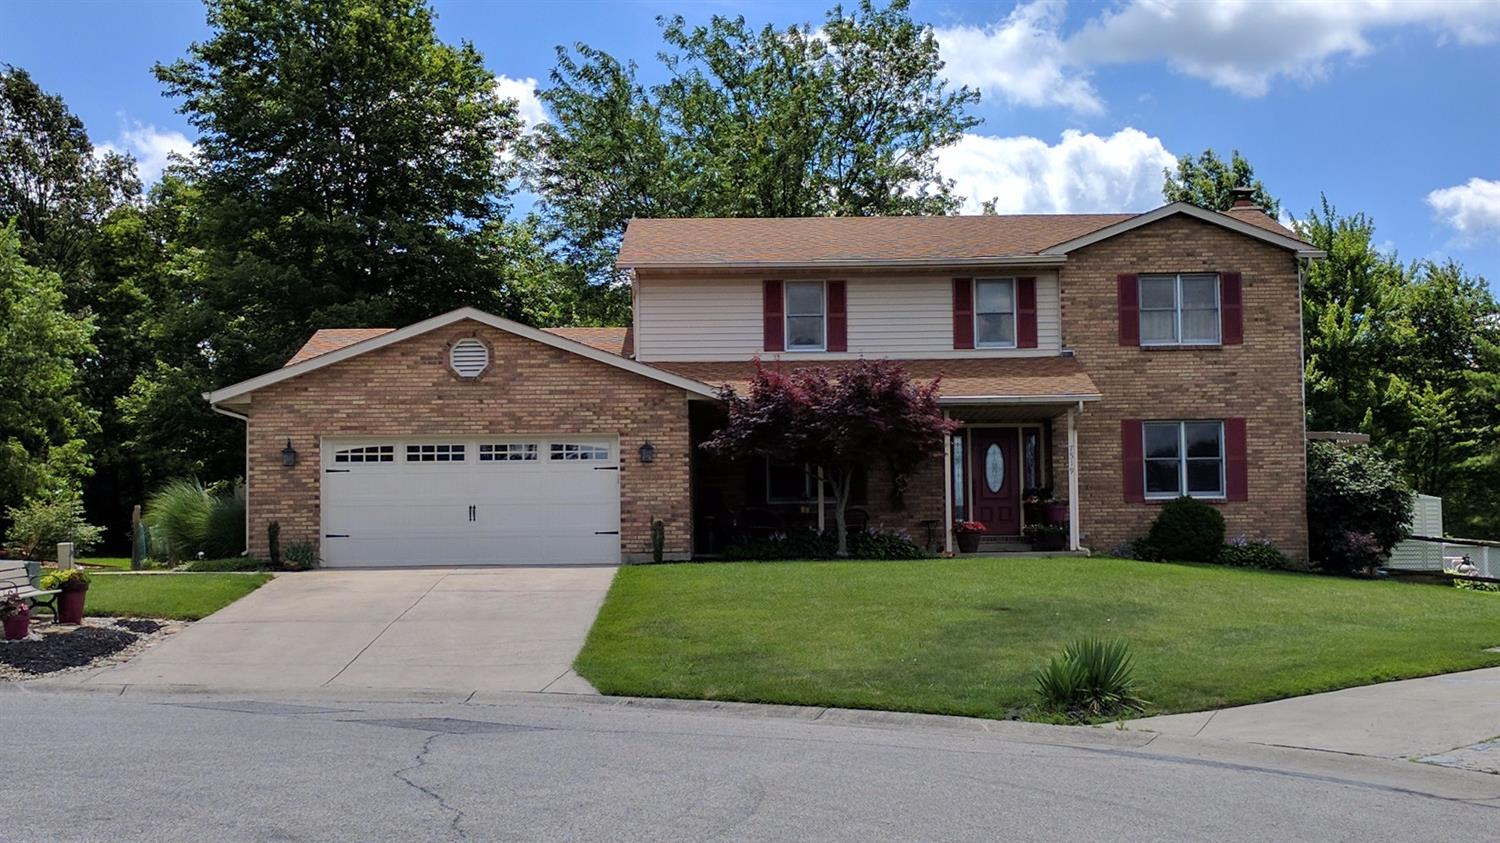 7519 Keehner Ridge Court, West Chester, OH 45069